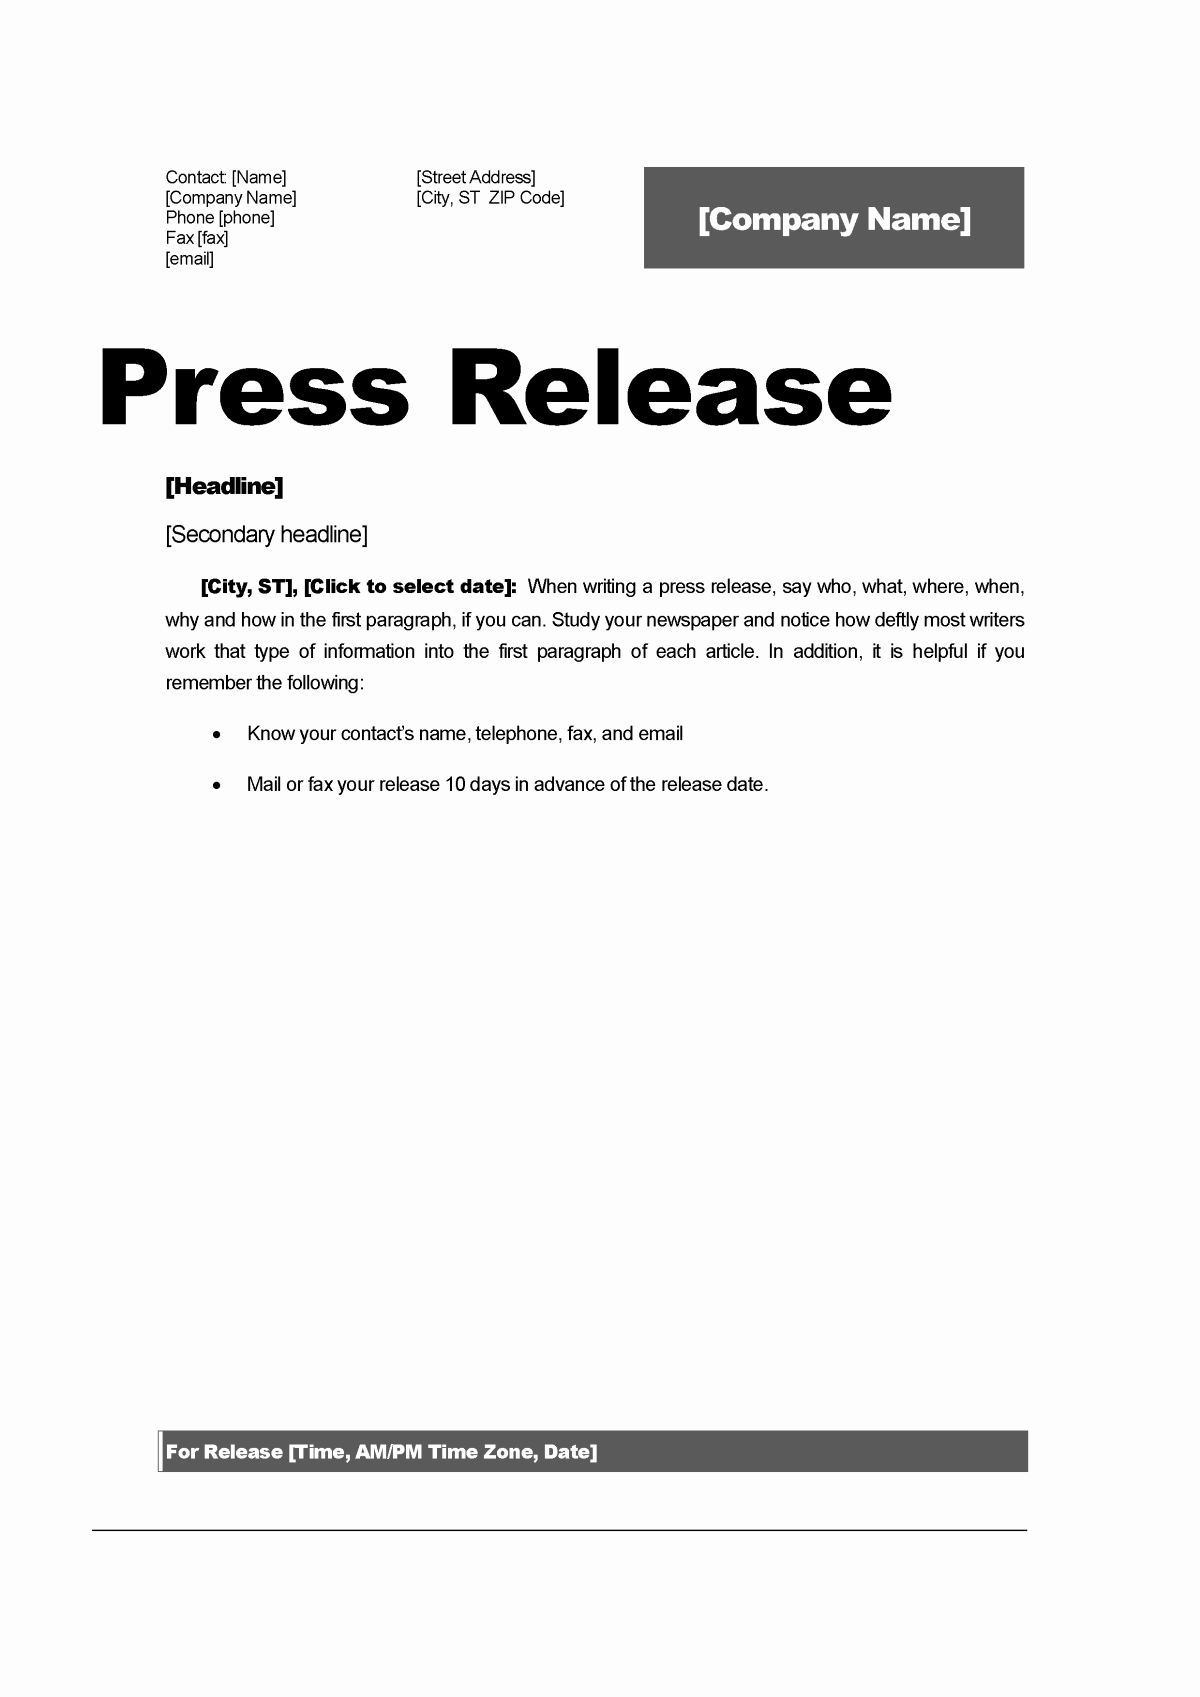 Press Release Template Free Unique top 5 Resources to Get Free Press Release Templates Word